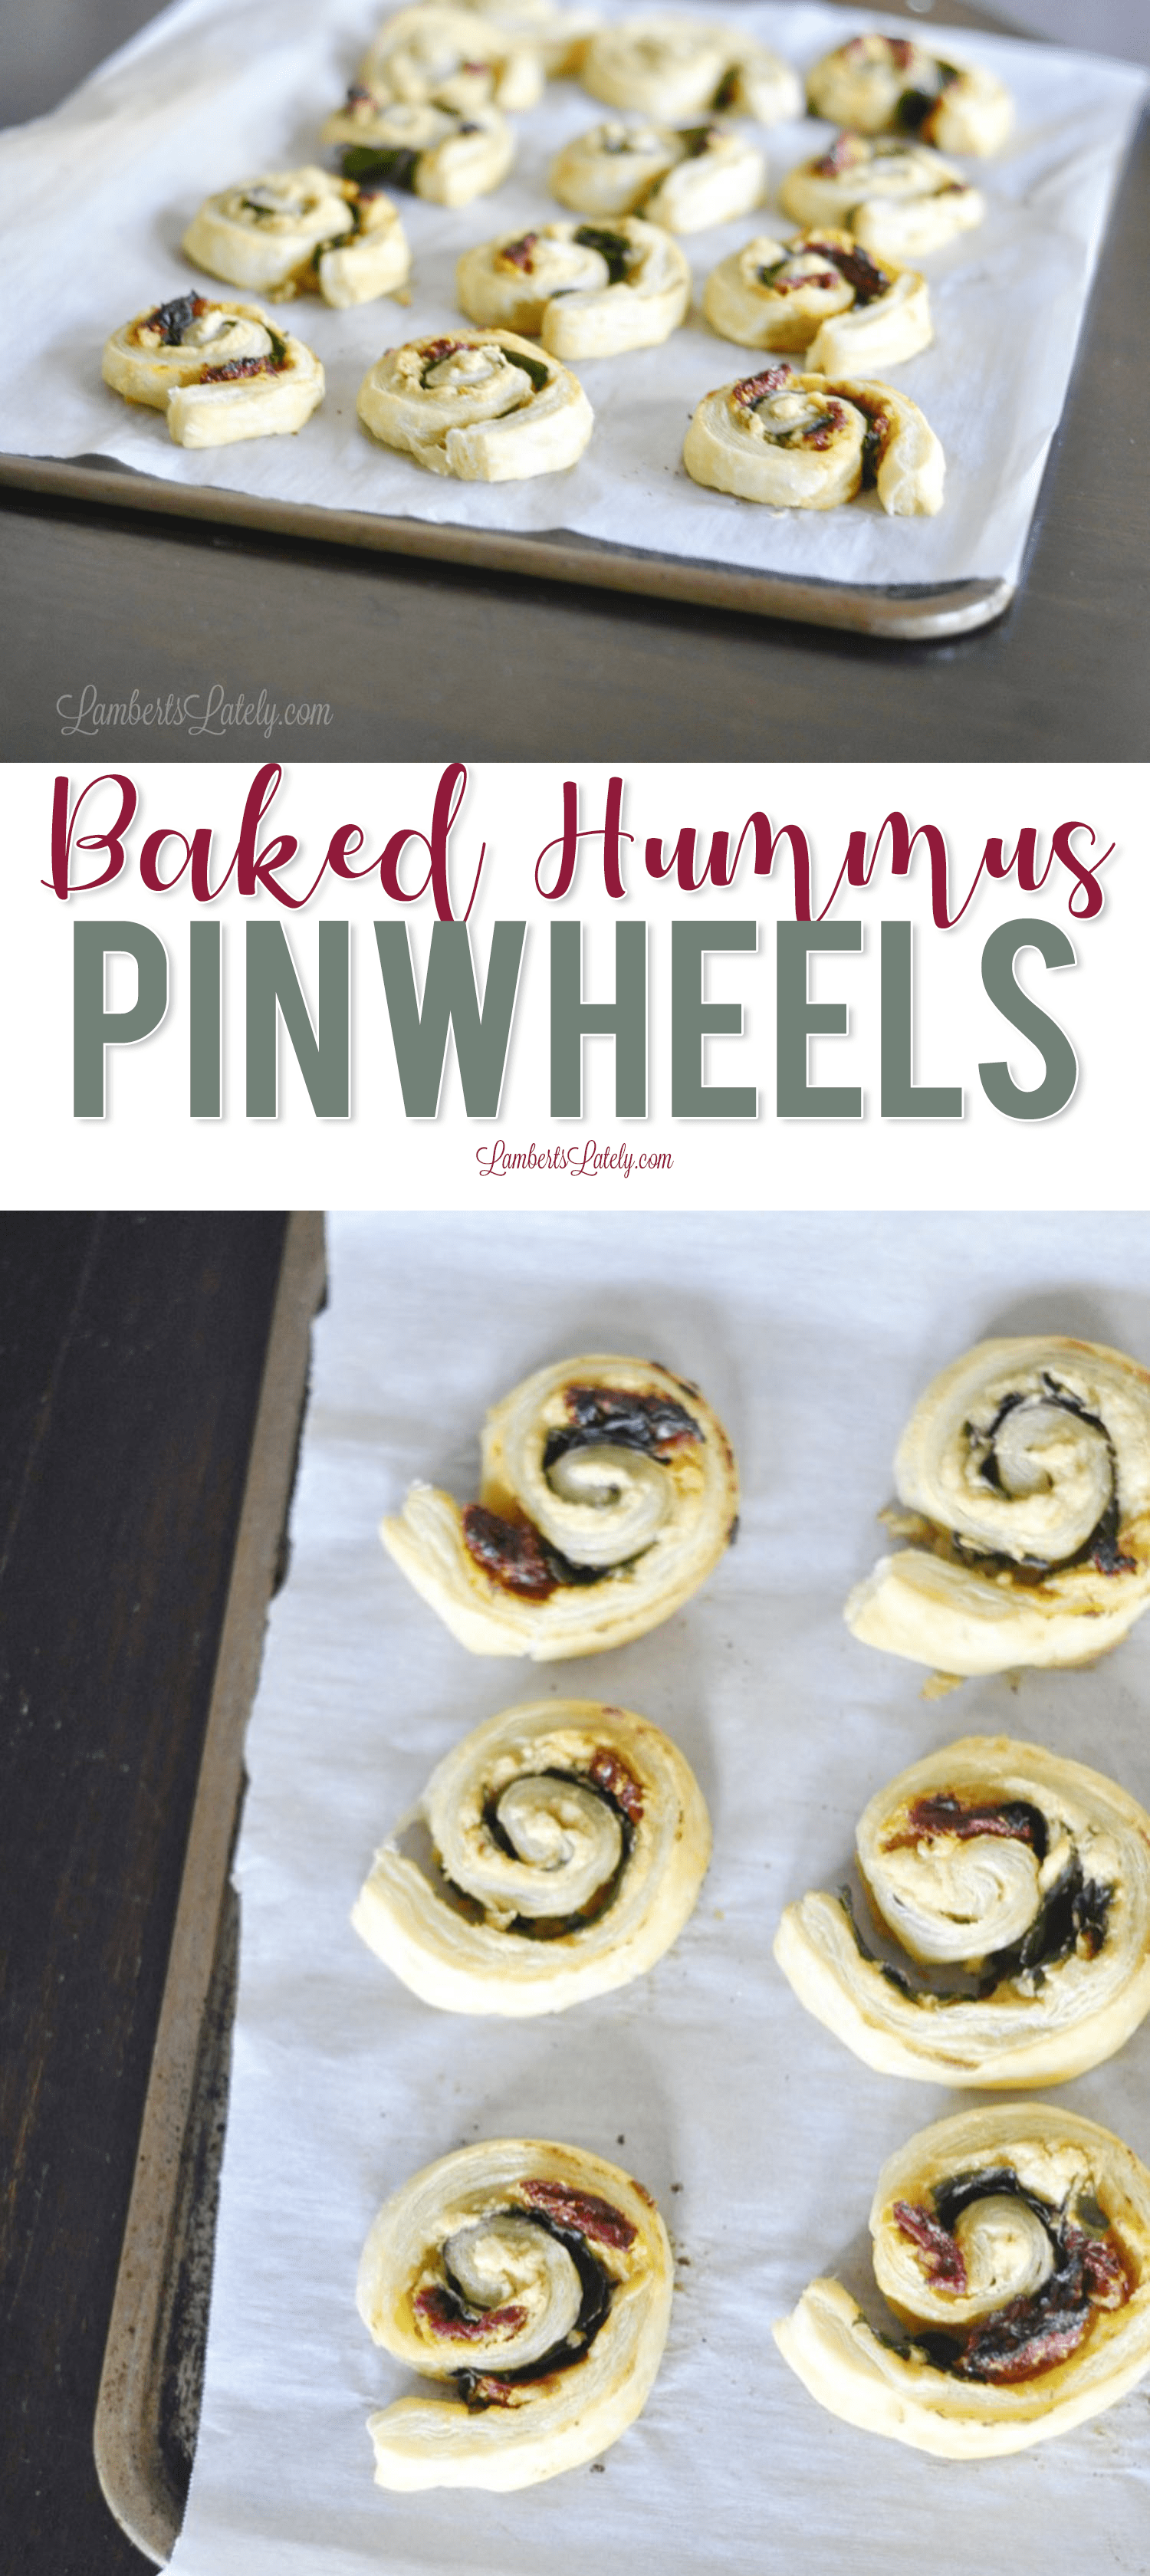 Baked Hummus Pinwheels are perfect for a warm hummus appetizer recipe! Uses the popular dip combined with sun dried tomatoes and spinach, rolled in puff pastry.